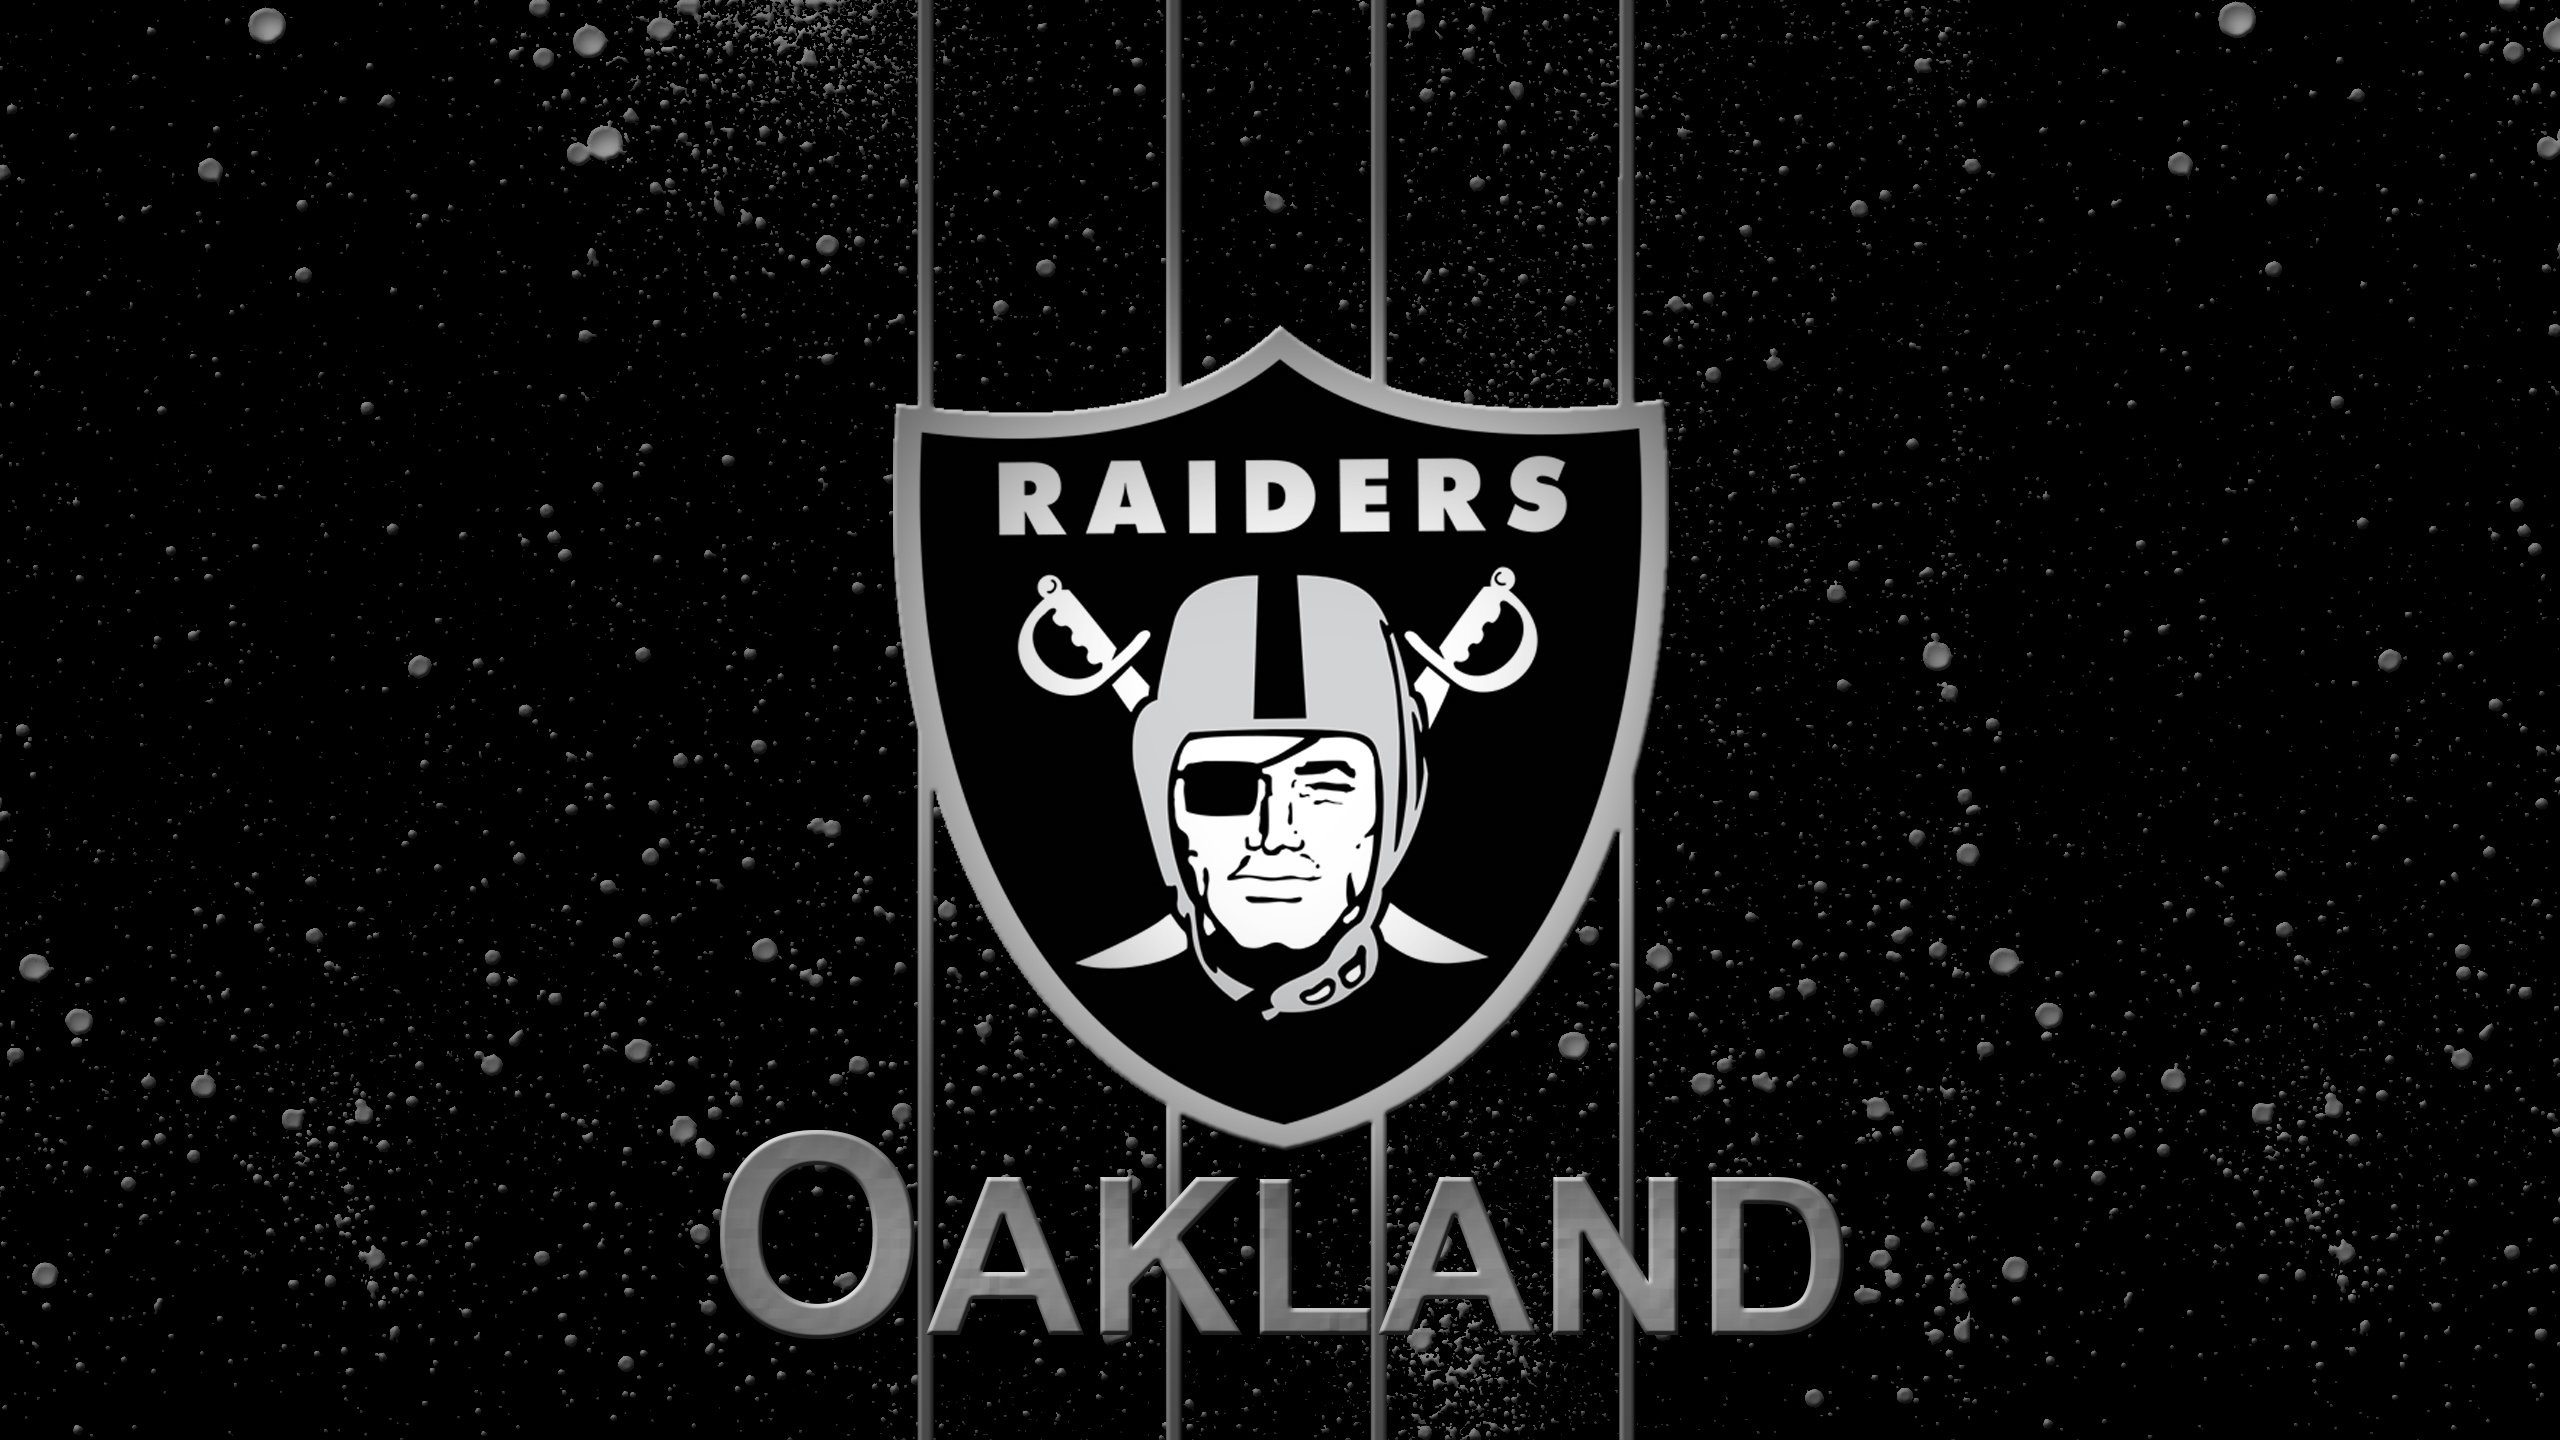 oakland raiders wallpaper backgrounds hd by Ramsey Brook ( 1365 .